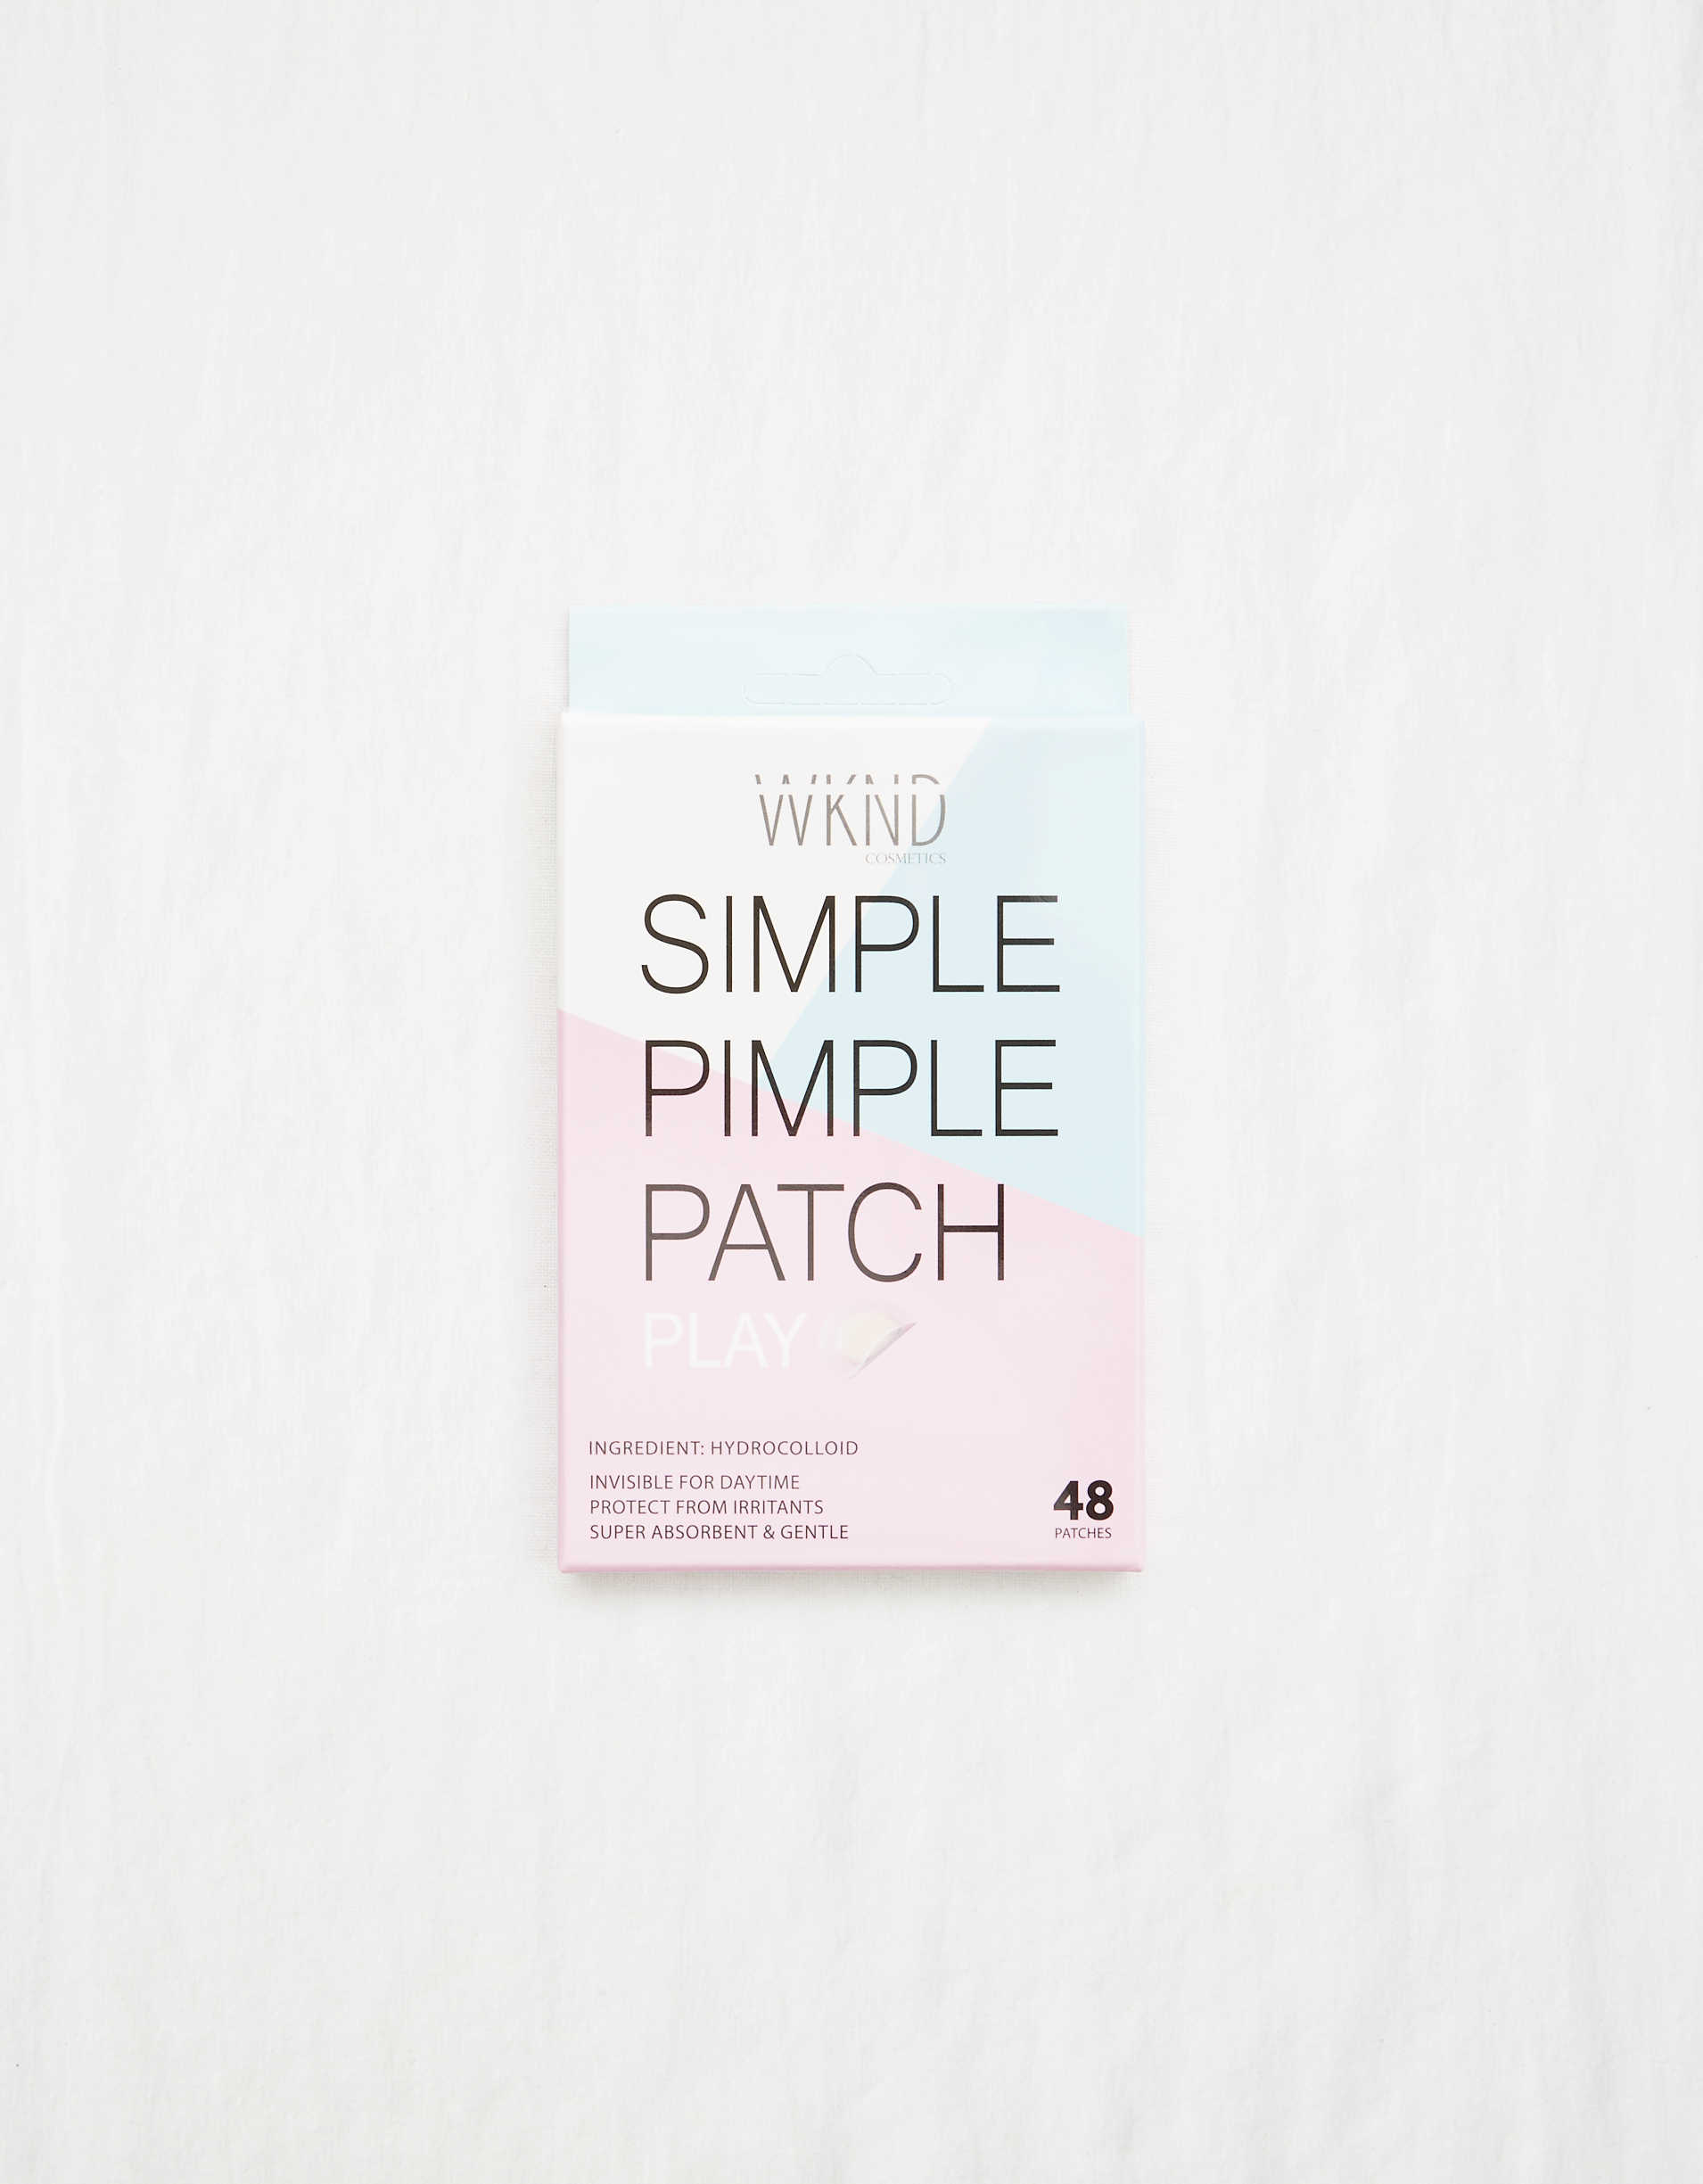 The Simple Pimple Patch